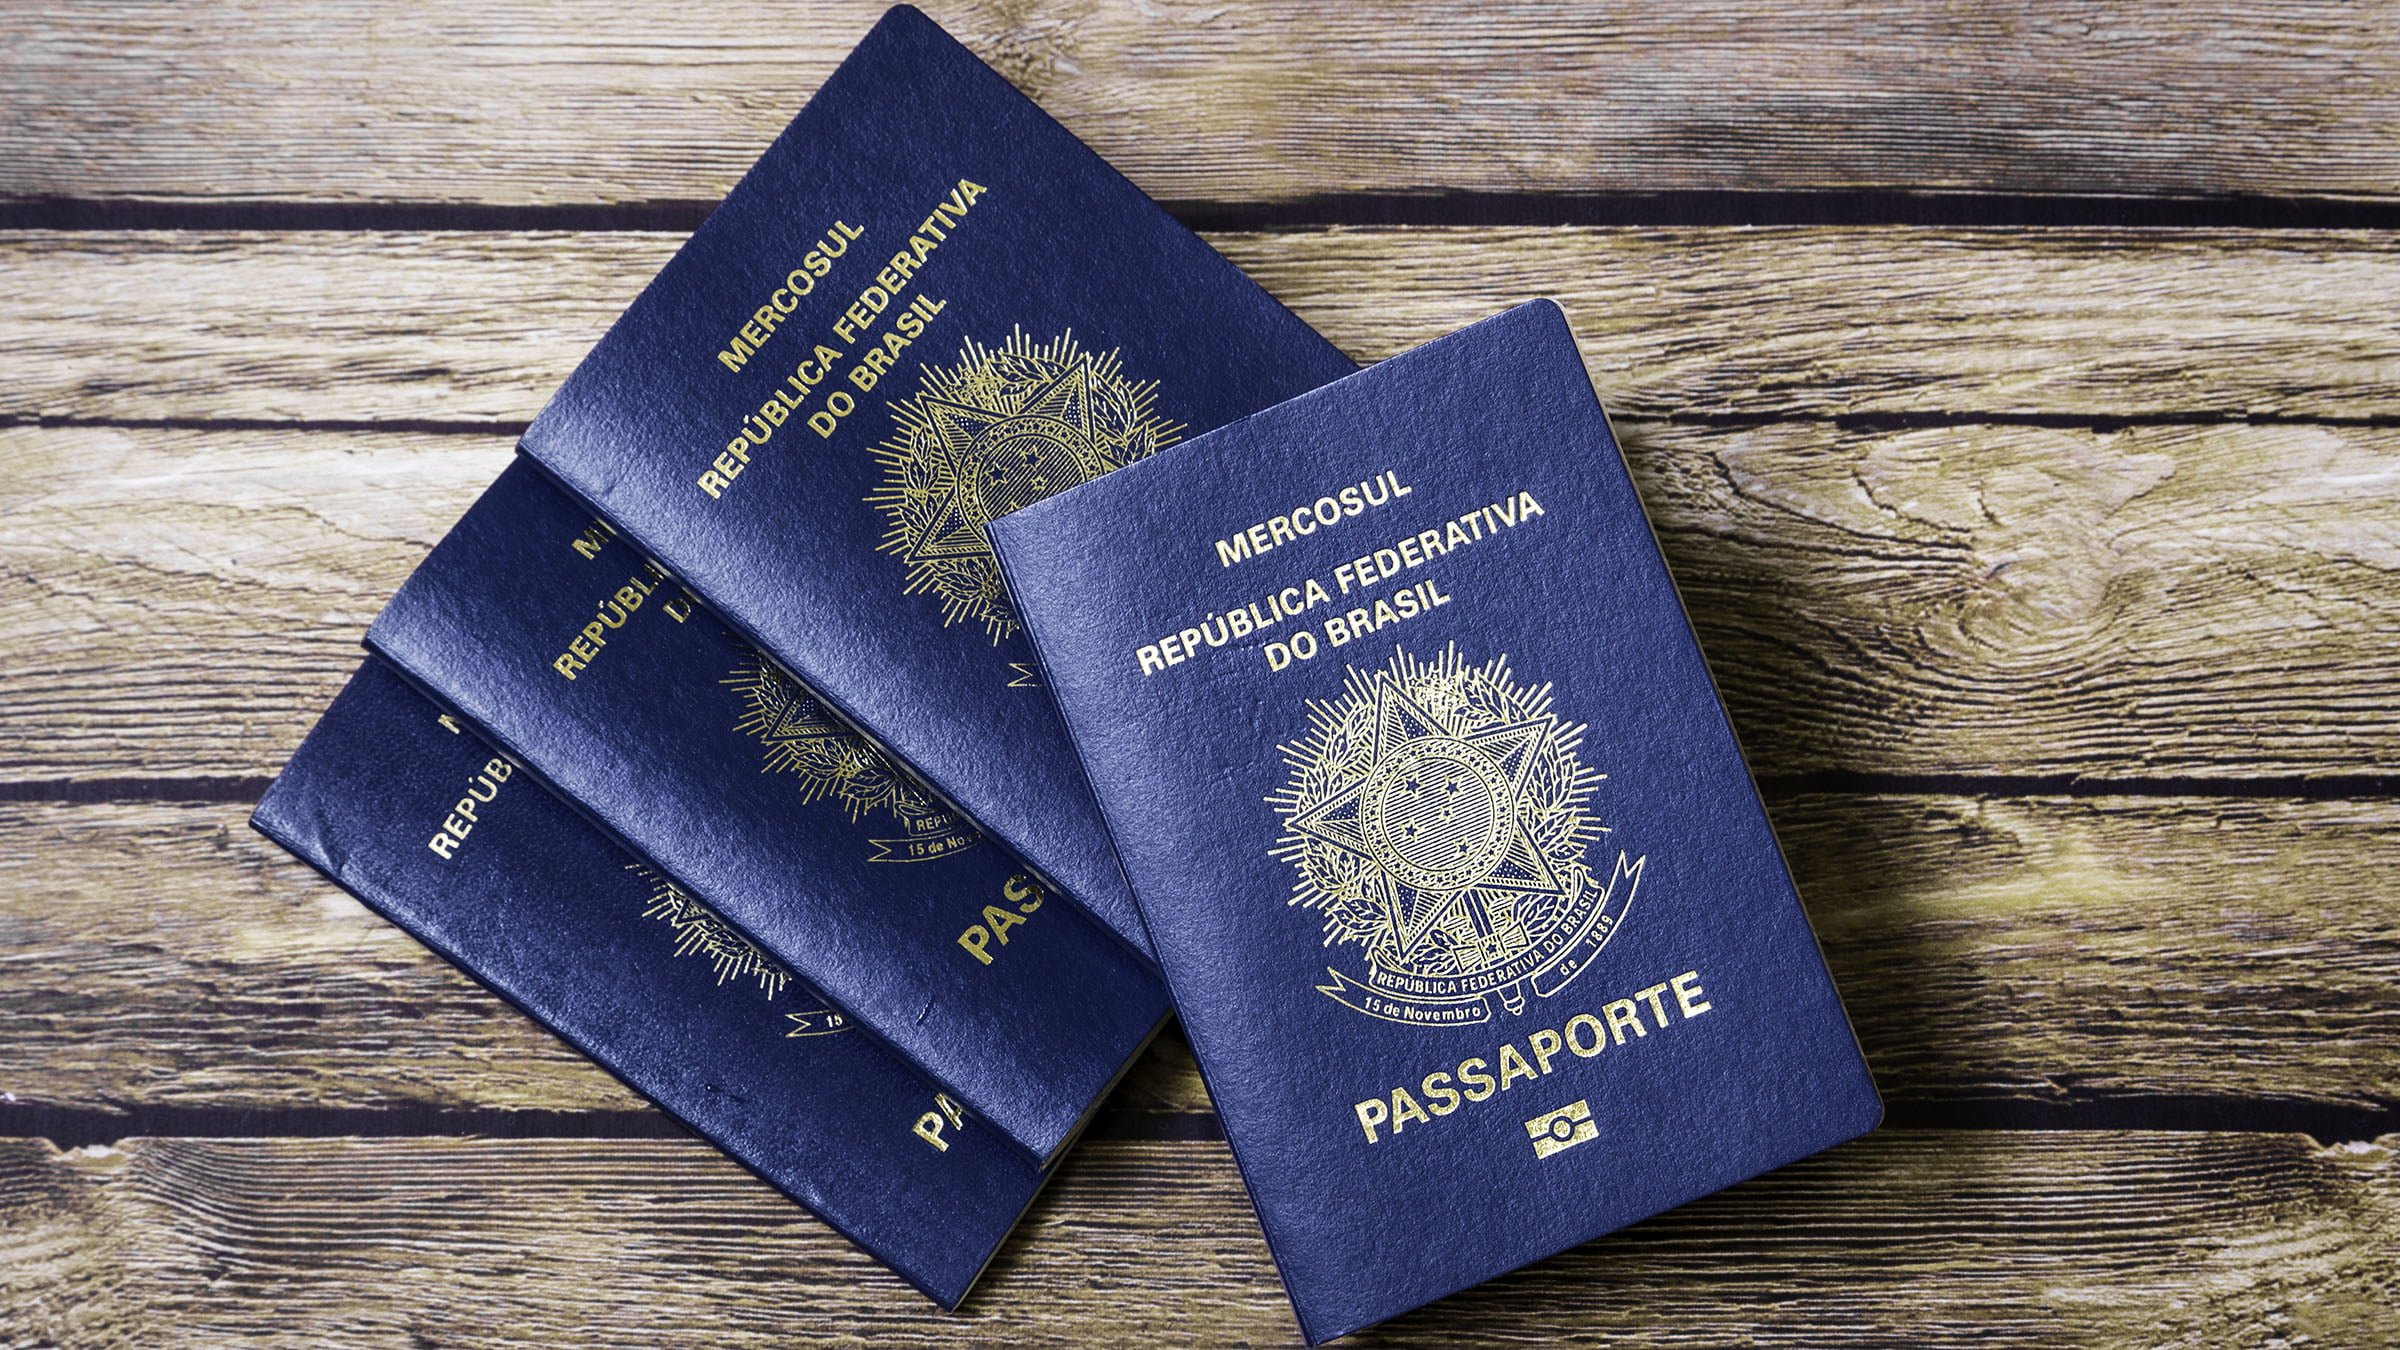 Vacunas, documentación y requisitos para viajar a Brasil